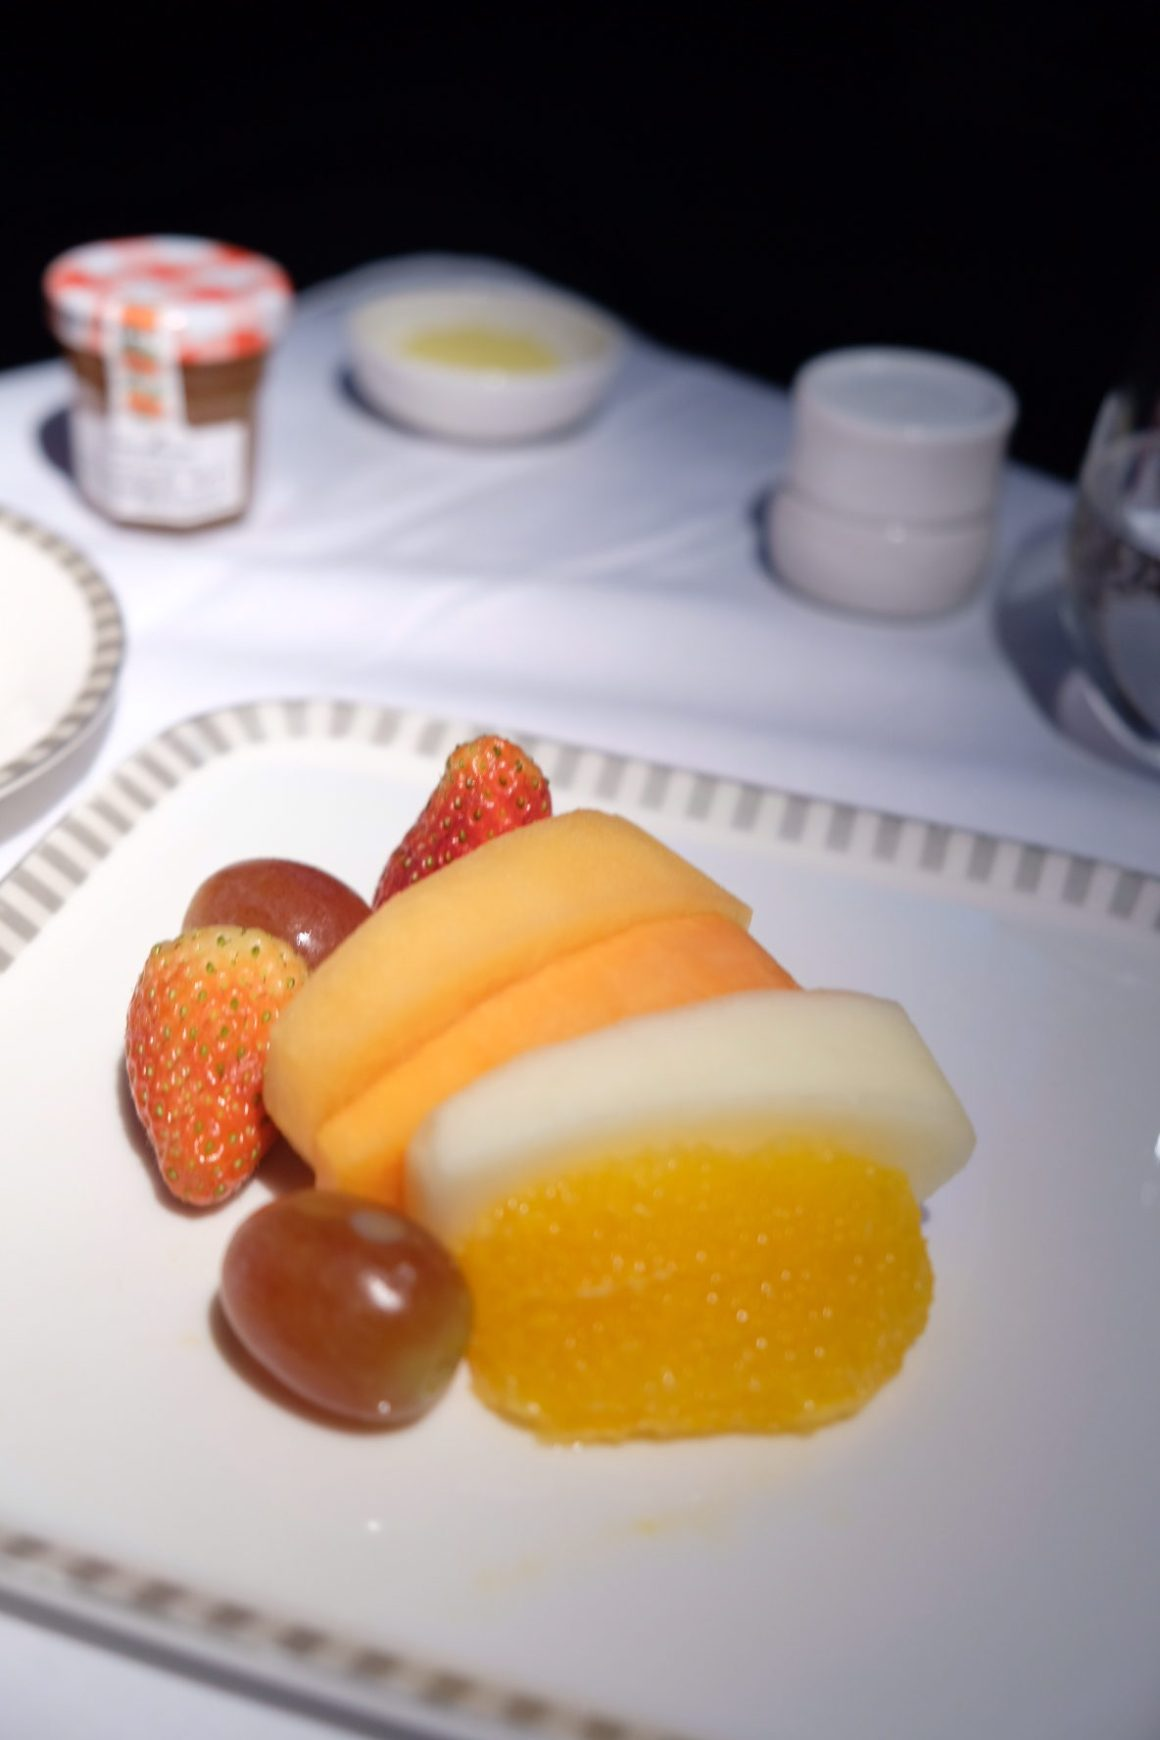 Singapore Airlines Business Class SQ334 From Singapore To Paris – Fruits